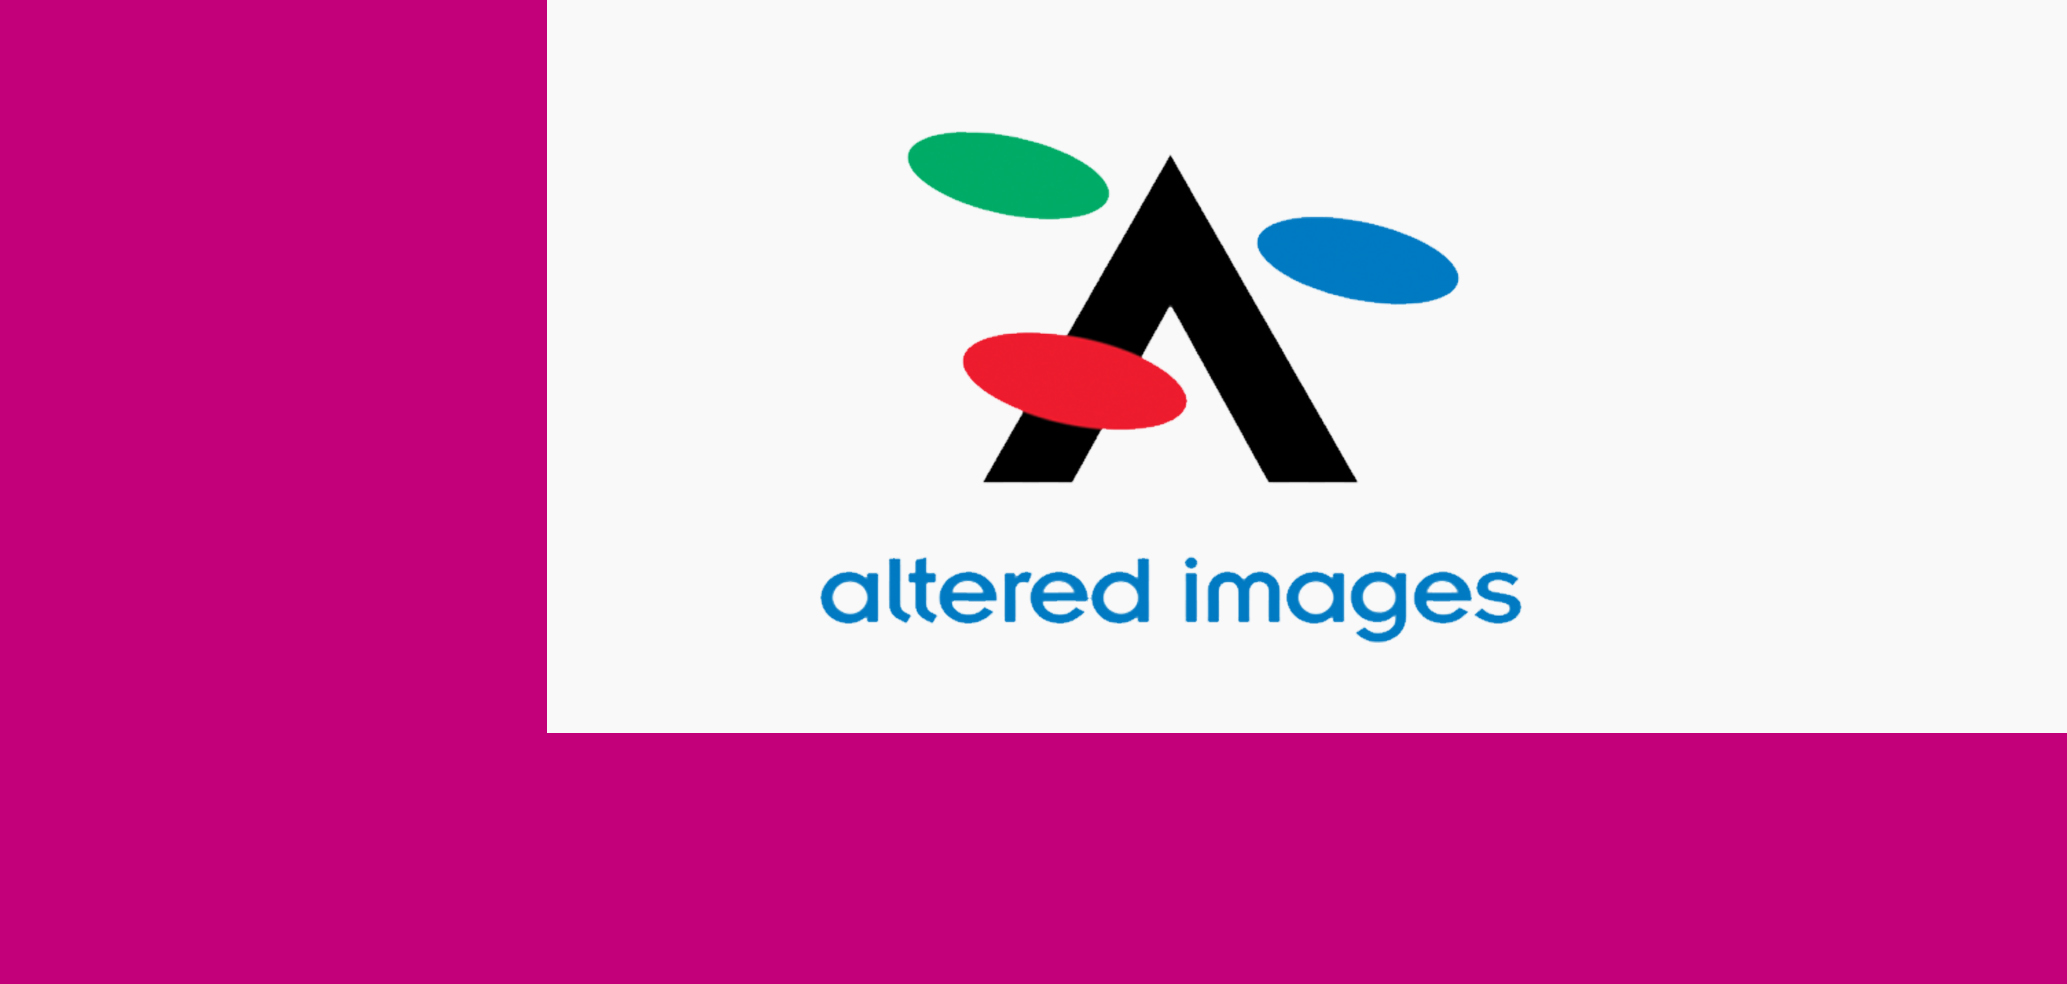 Plan Your Visit To The Media Production Show 2017_StorageDNA on Altered Images Stand